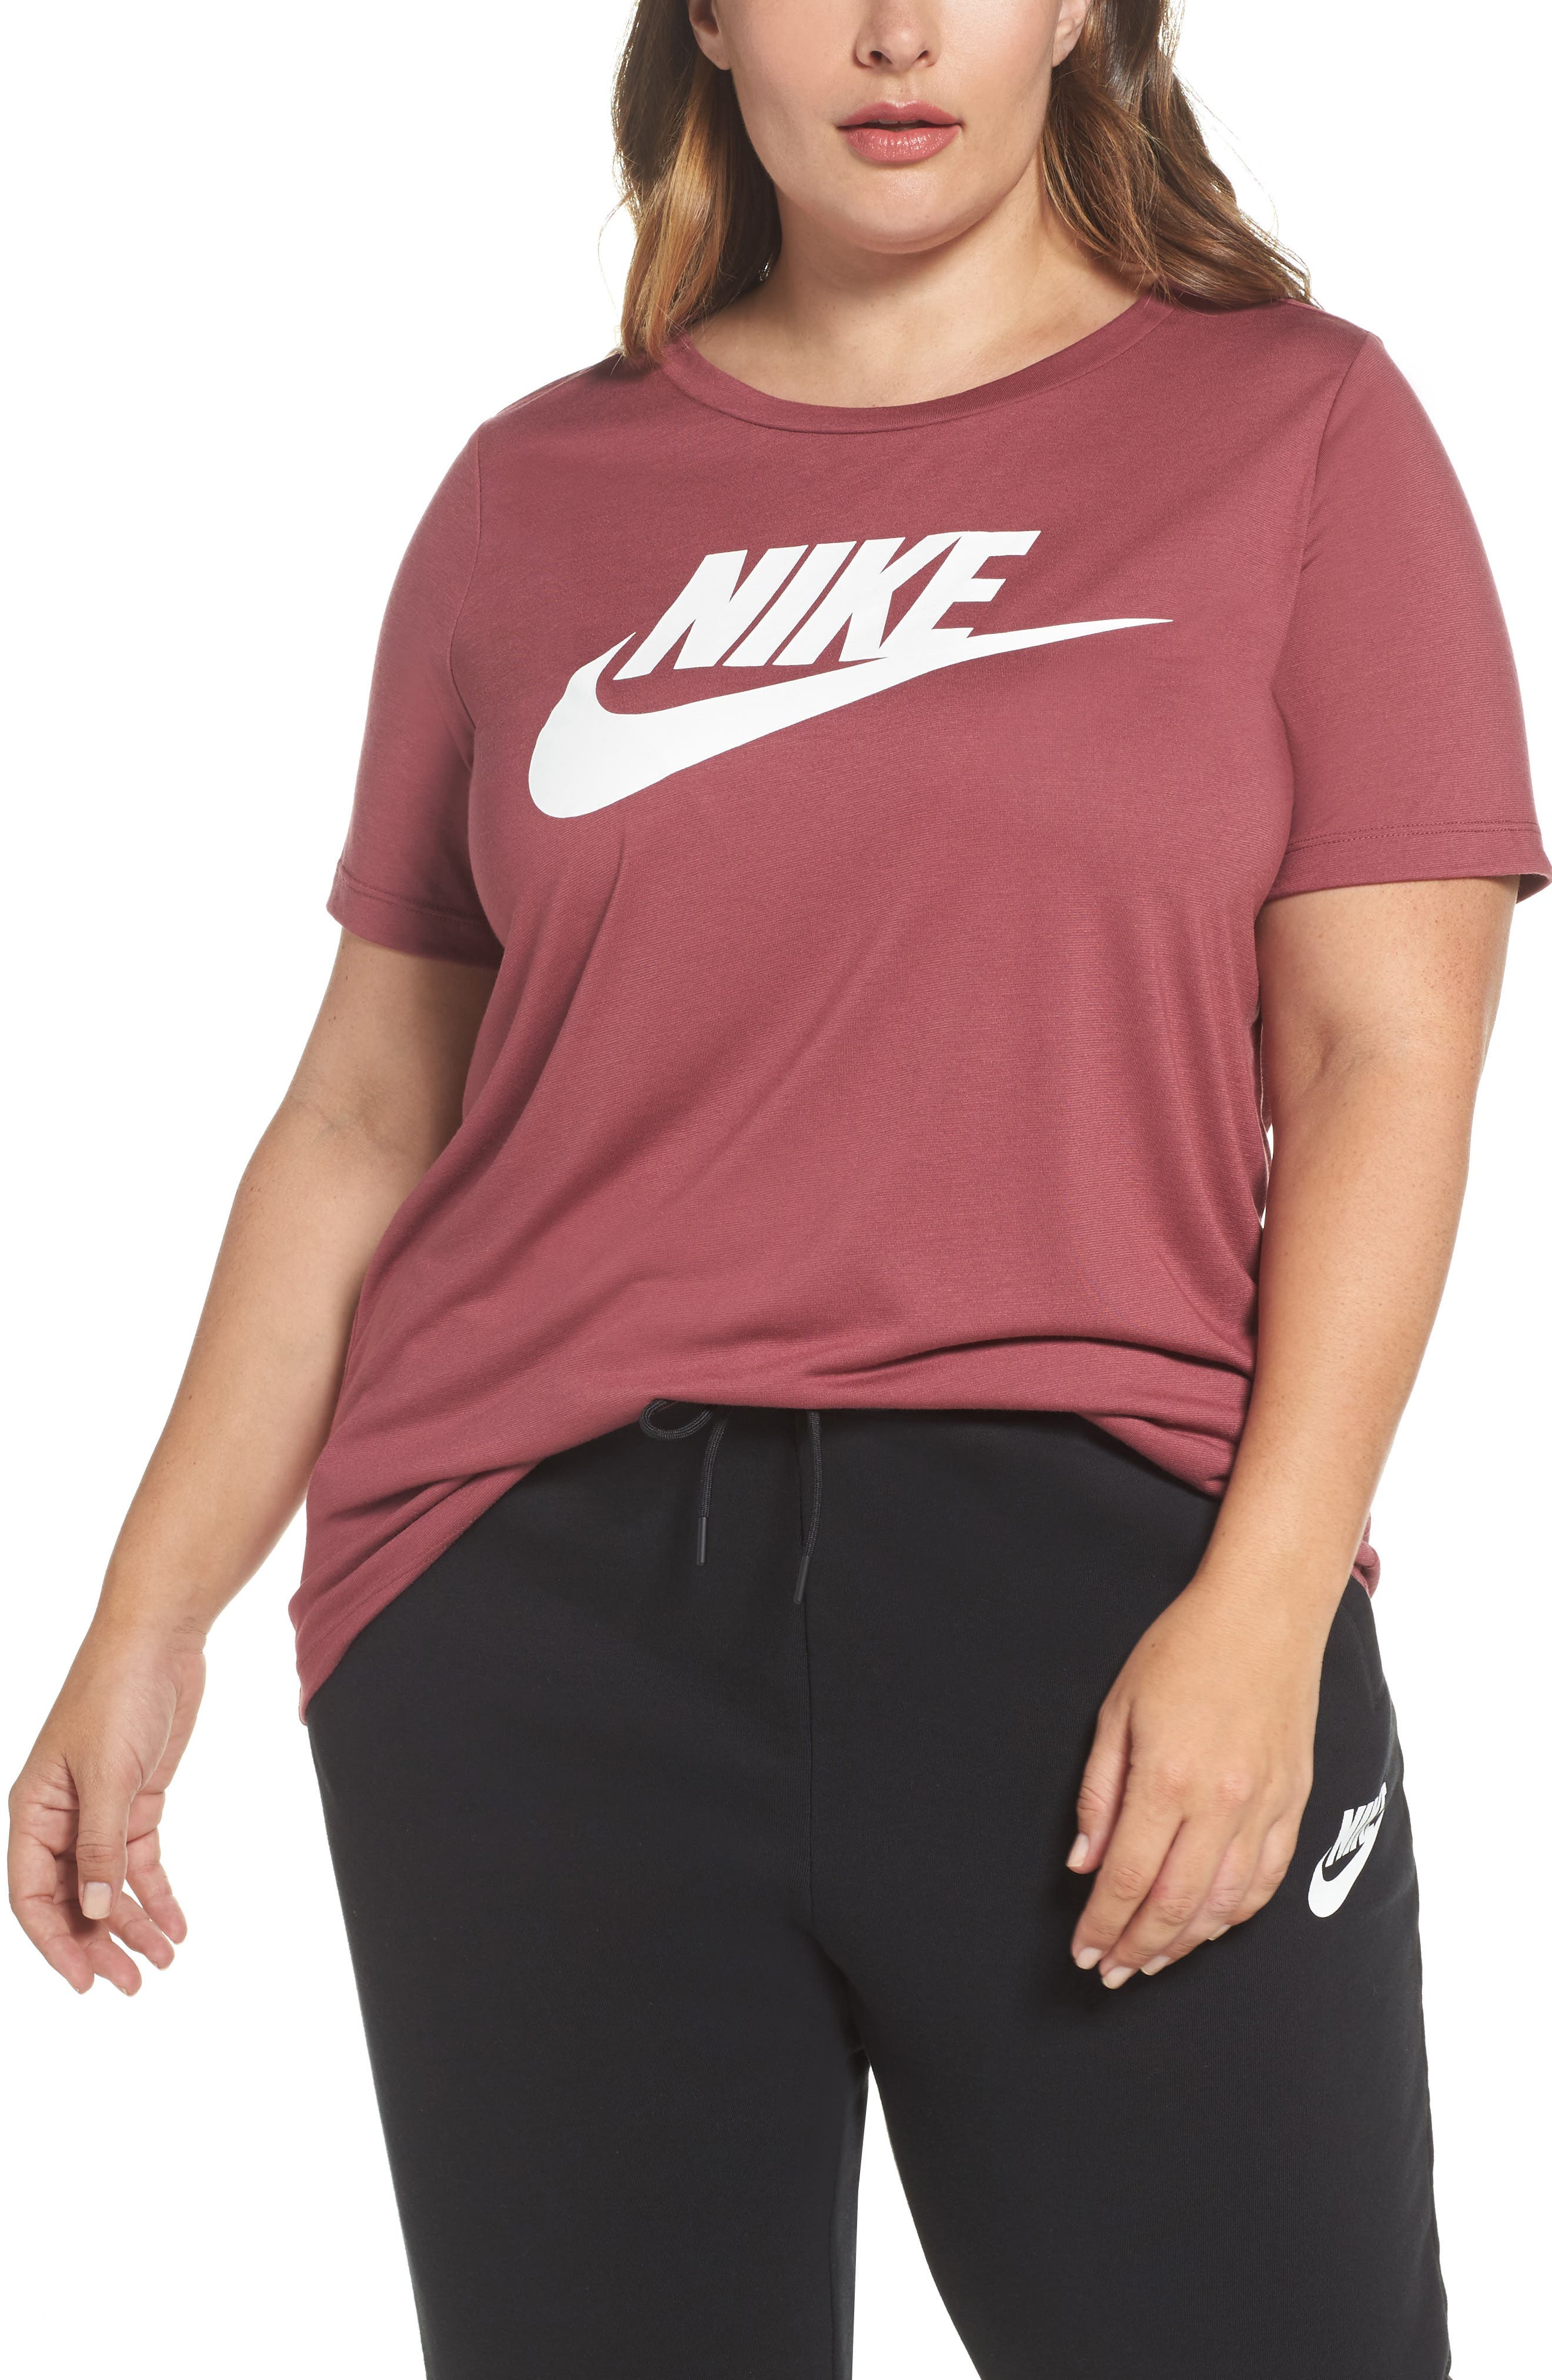 Main Image - Nike Essential Tee (Plus Size)